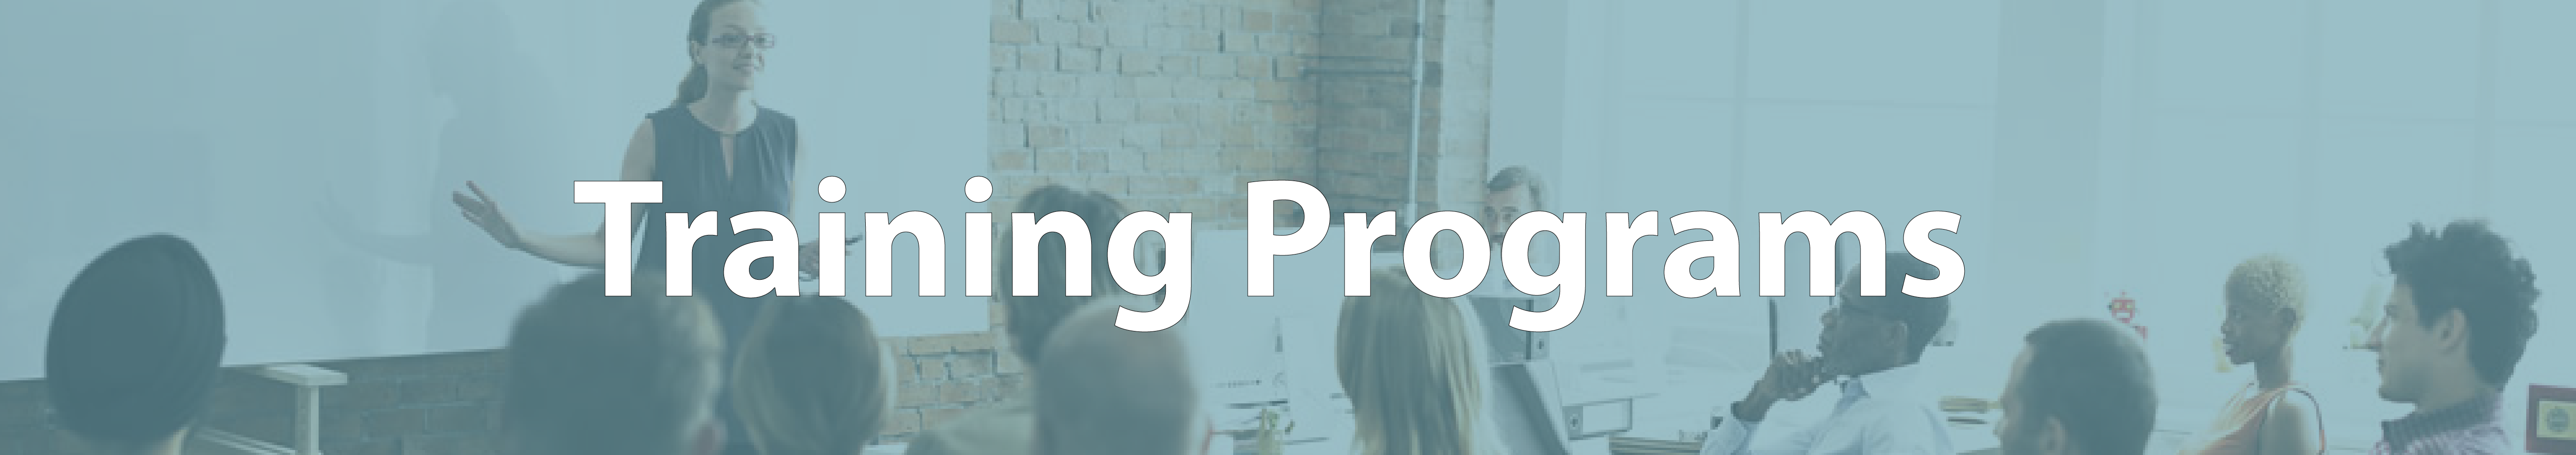 marketing consulting firms Training Programs Training 01